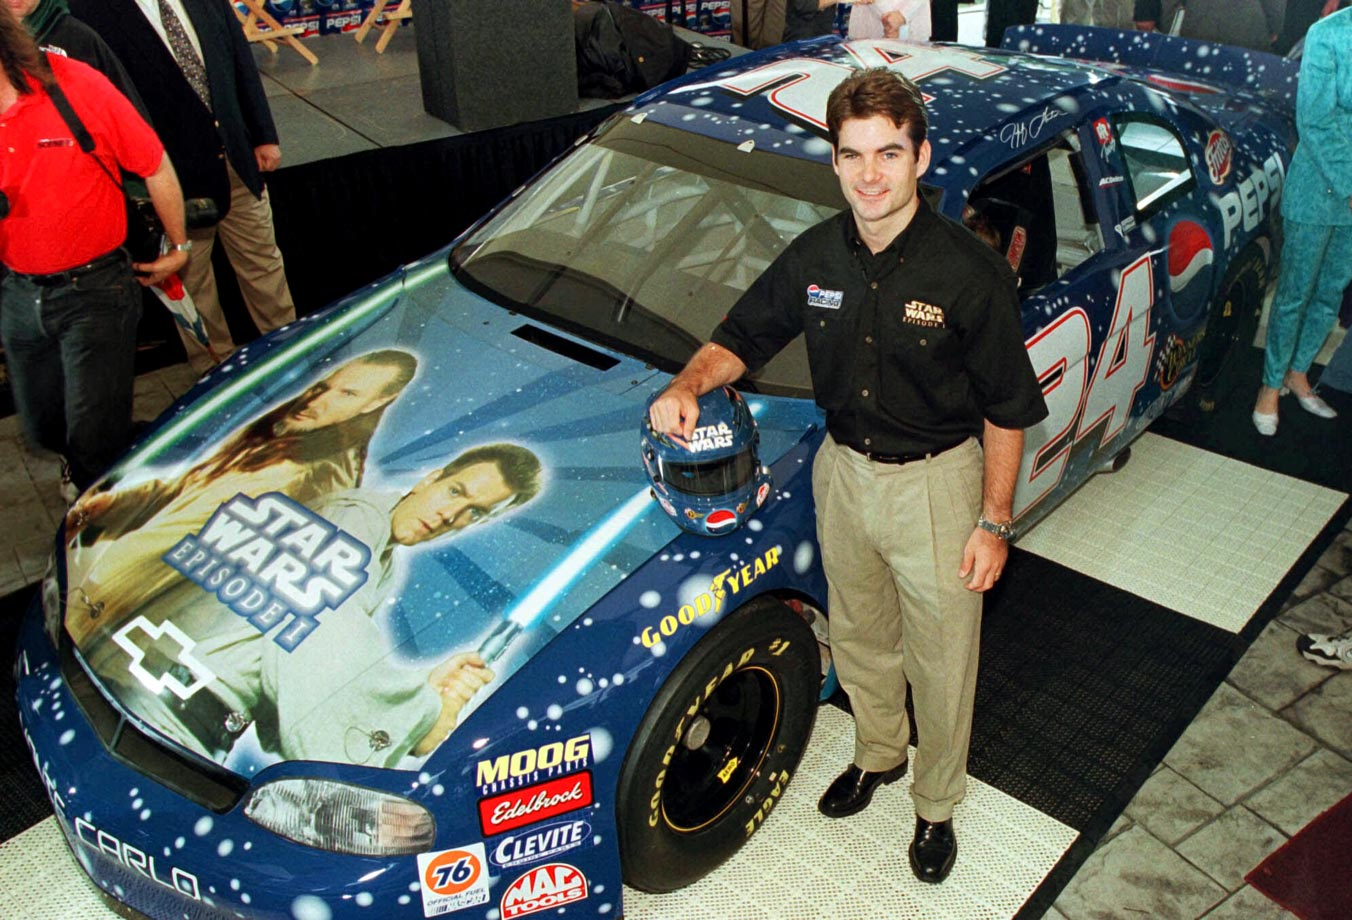 Jeff Gordon stands by his new Busch Grand National series car during a news conference to announce the Star Wars Episode I sponsorship for his team in the Carquest 300 race on May 26, 1999 in Concord, N.C.